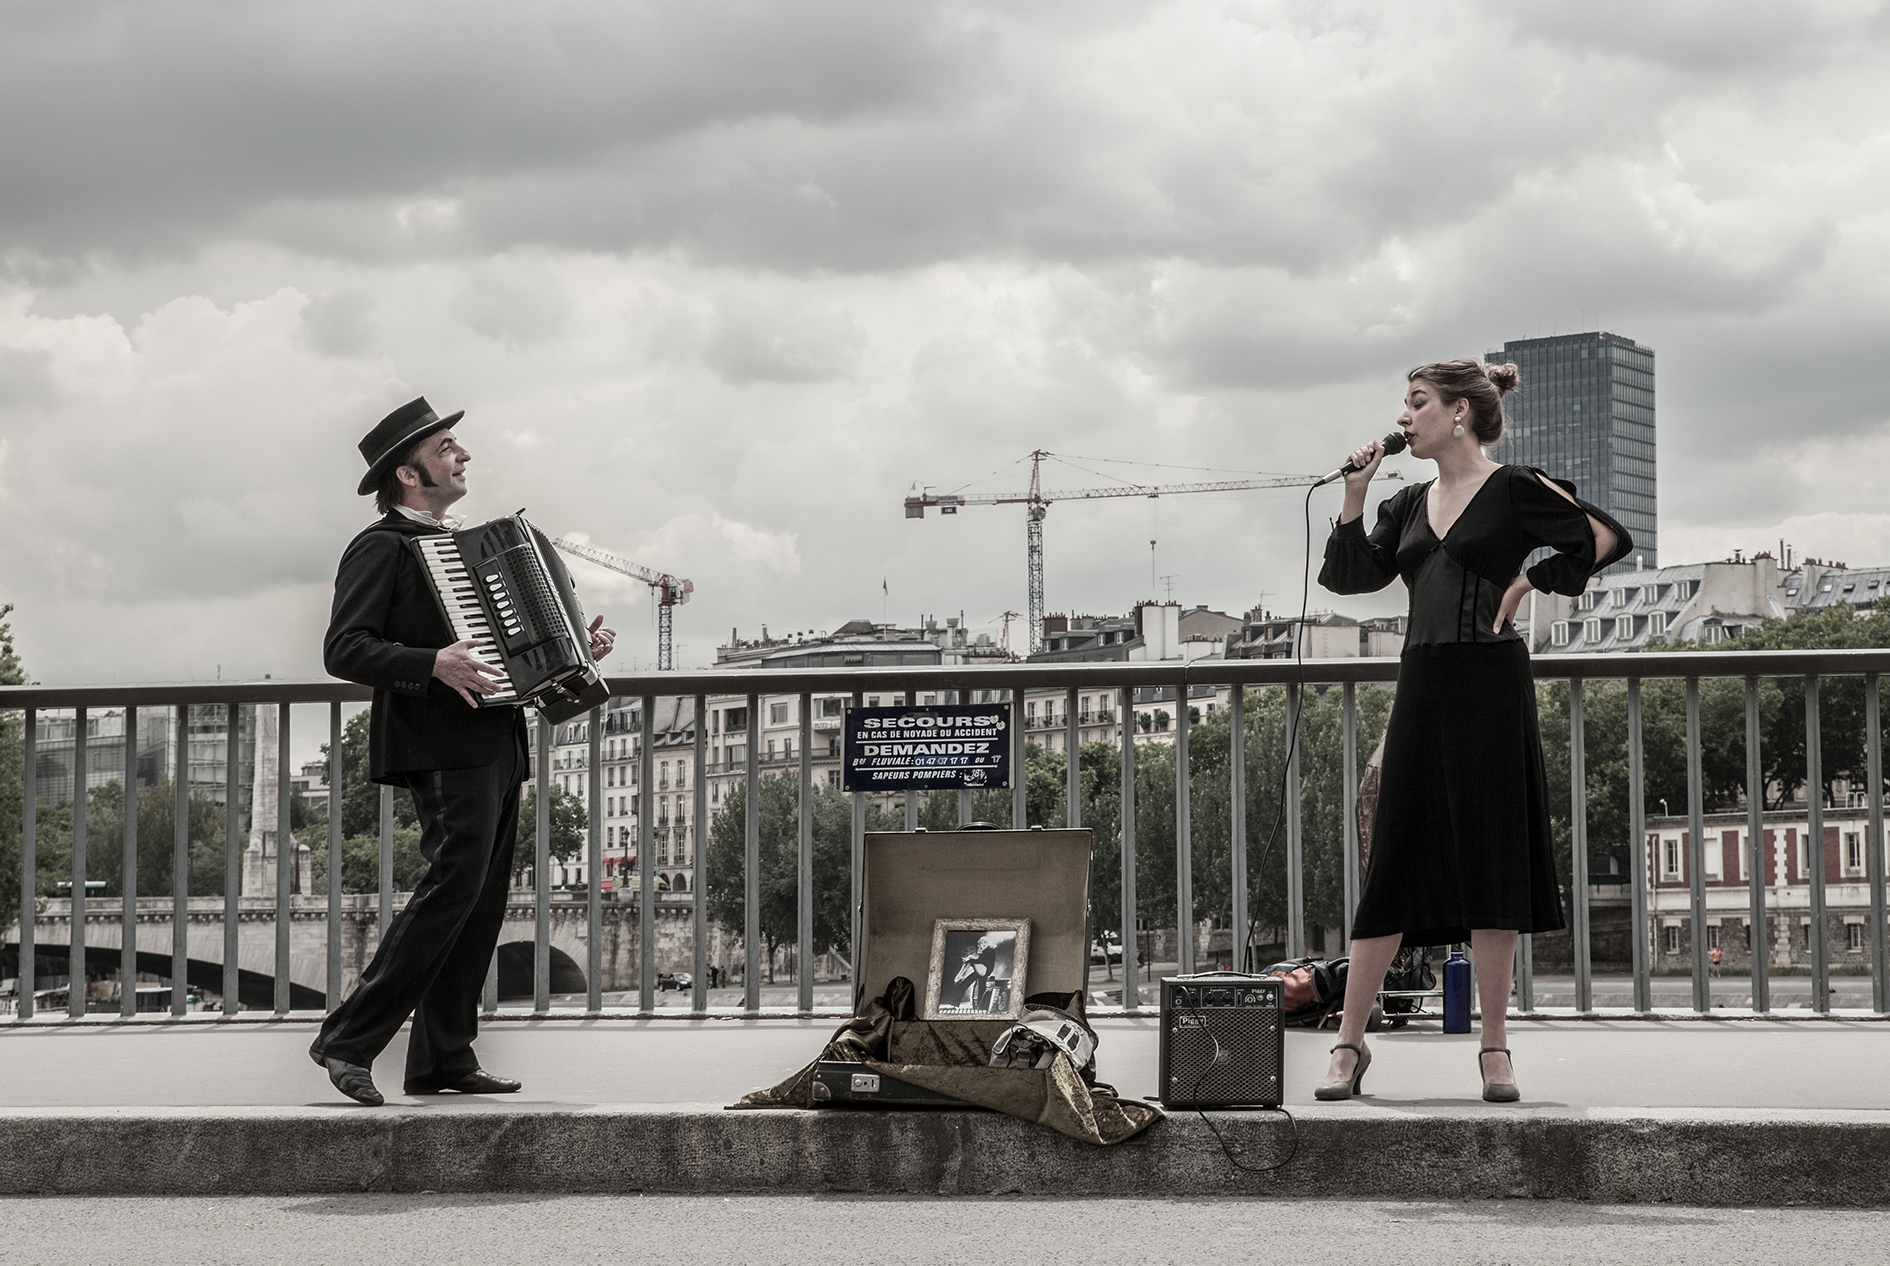 PARIS musiciens de rue